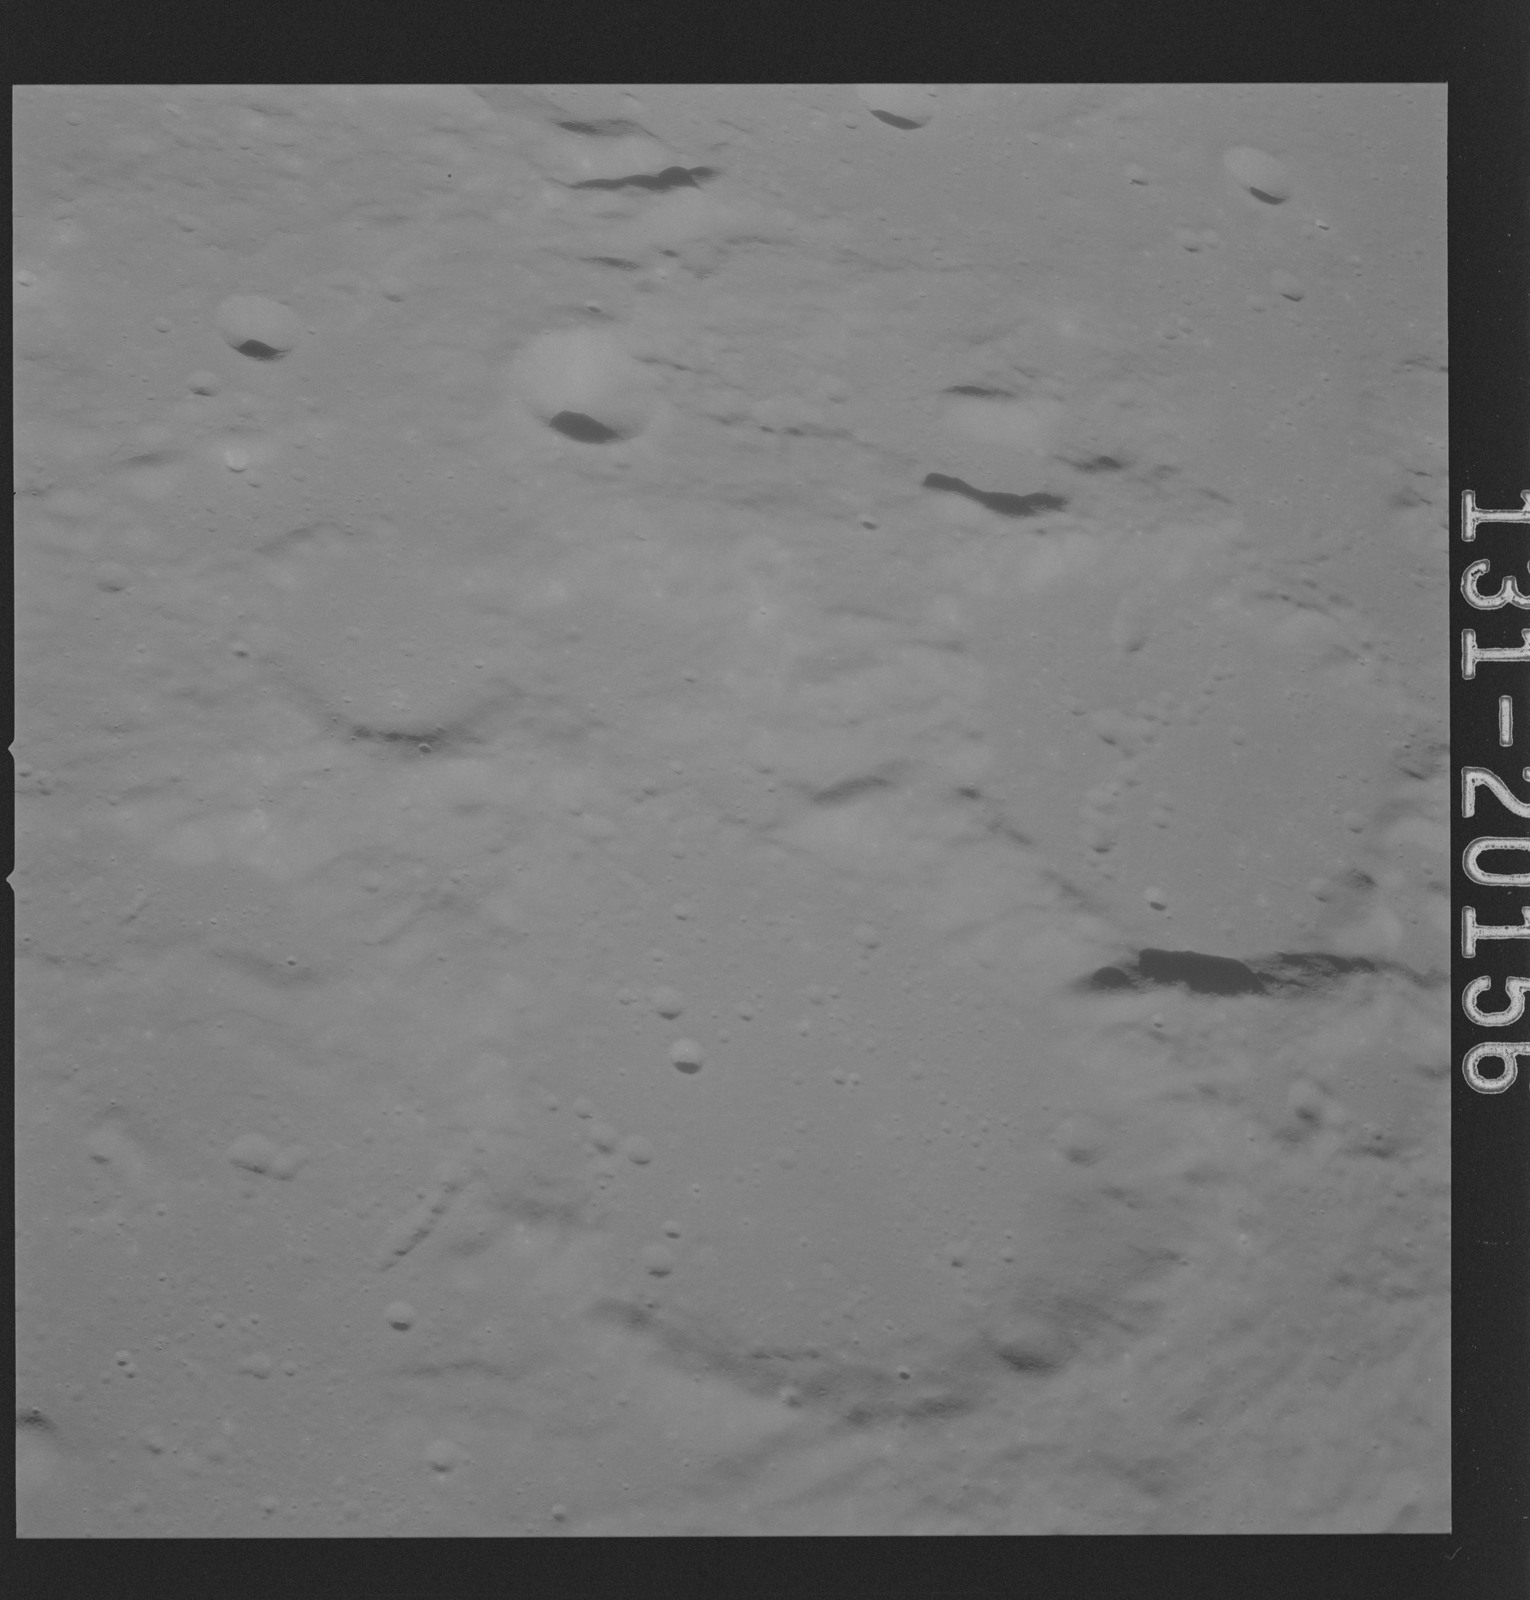 AS16-131-20156 - Apollo 16 - Apollo 16 Mission Image - Ultraviolet view of the Dolland B, C Craters, 4000A.